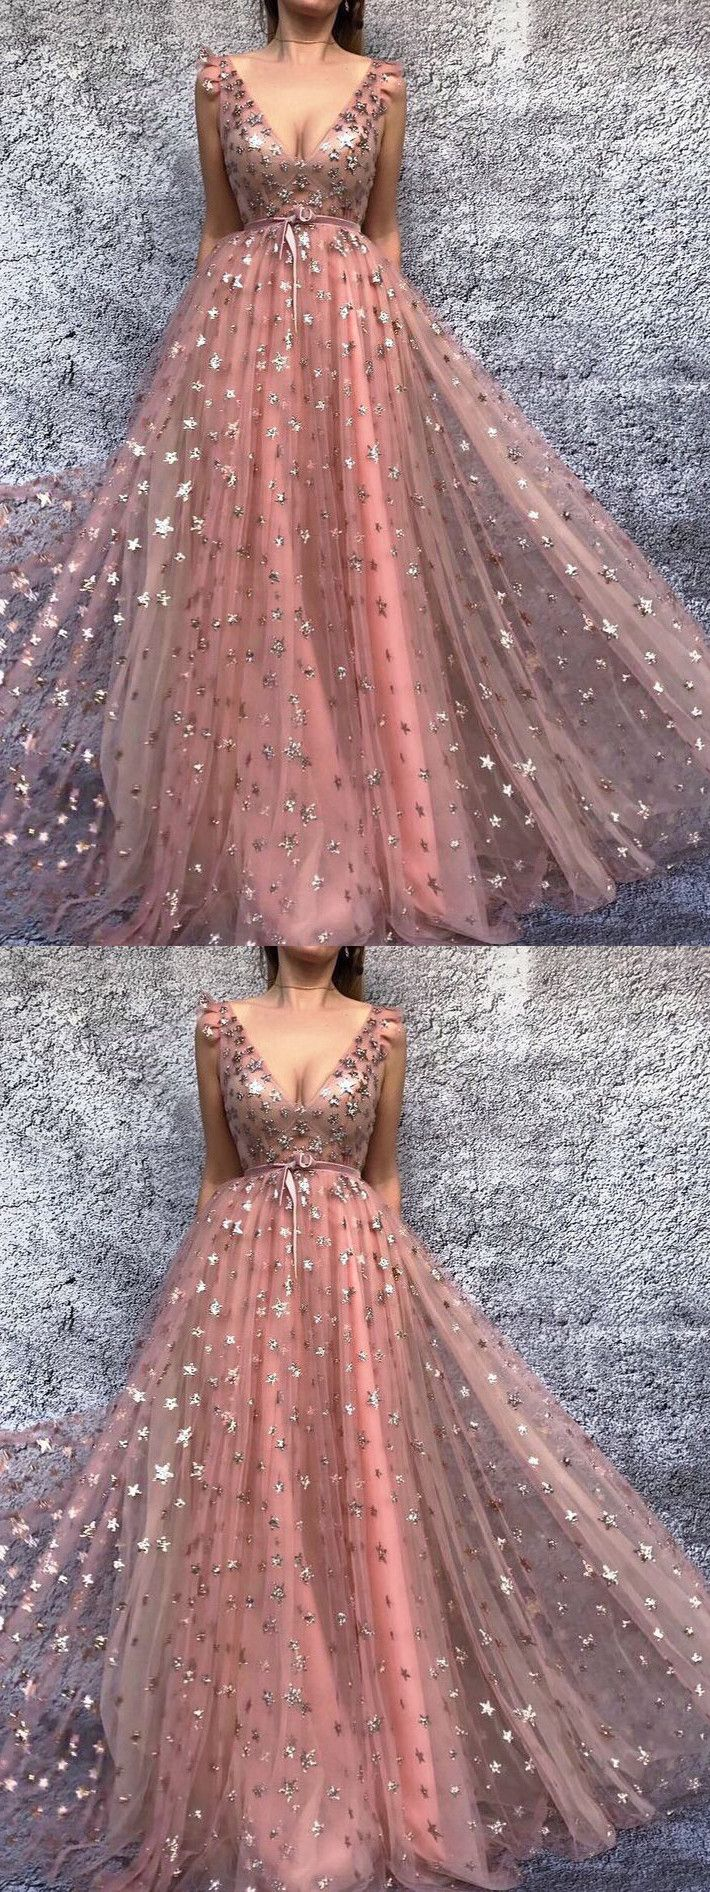 v neck prom dress lace cheap long prom dress vb ruha